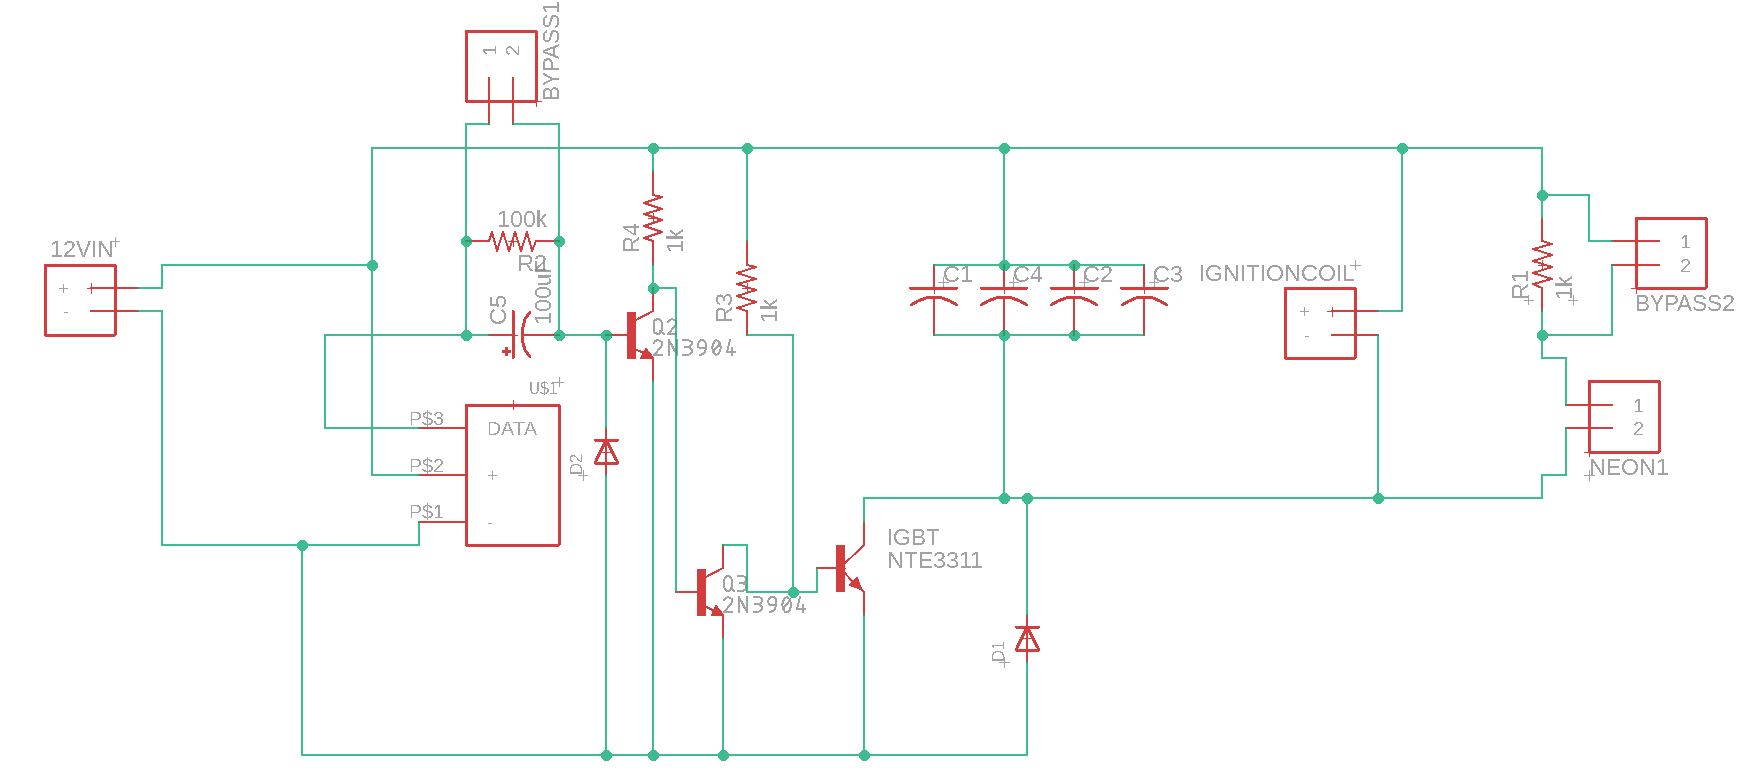 fence power board schematic.PNG